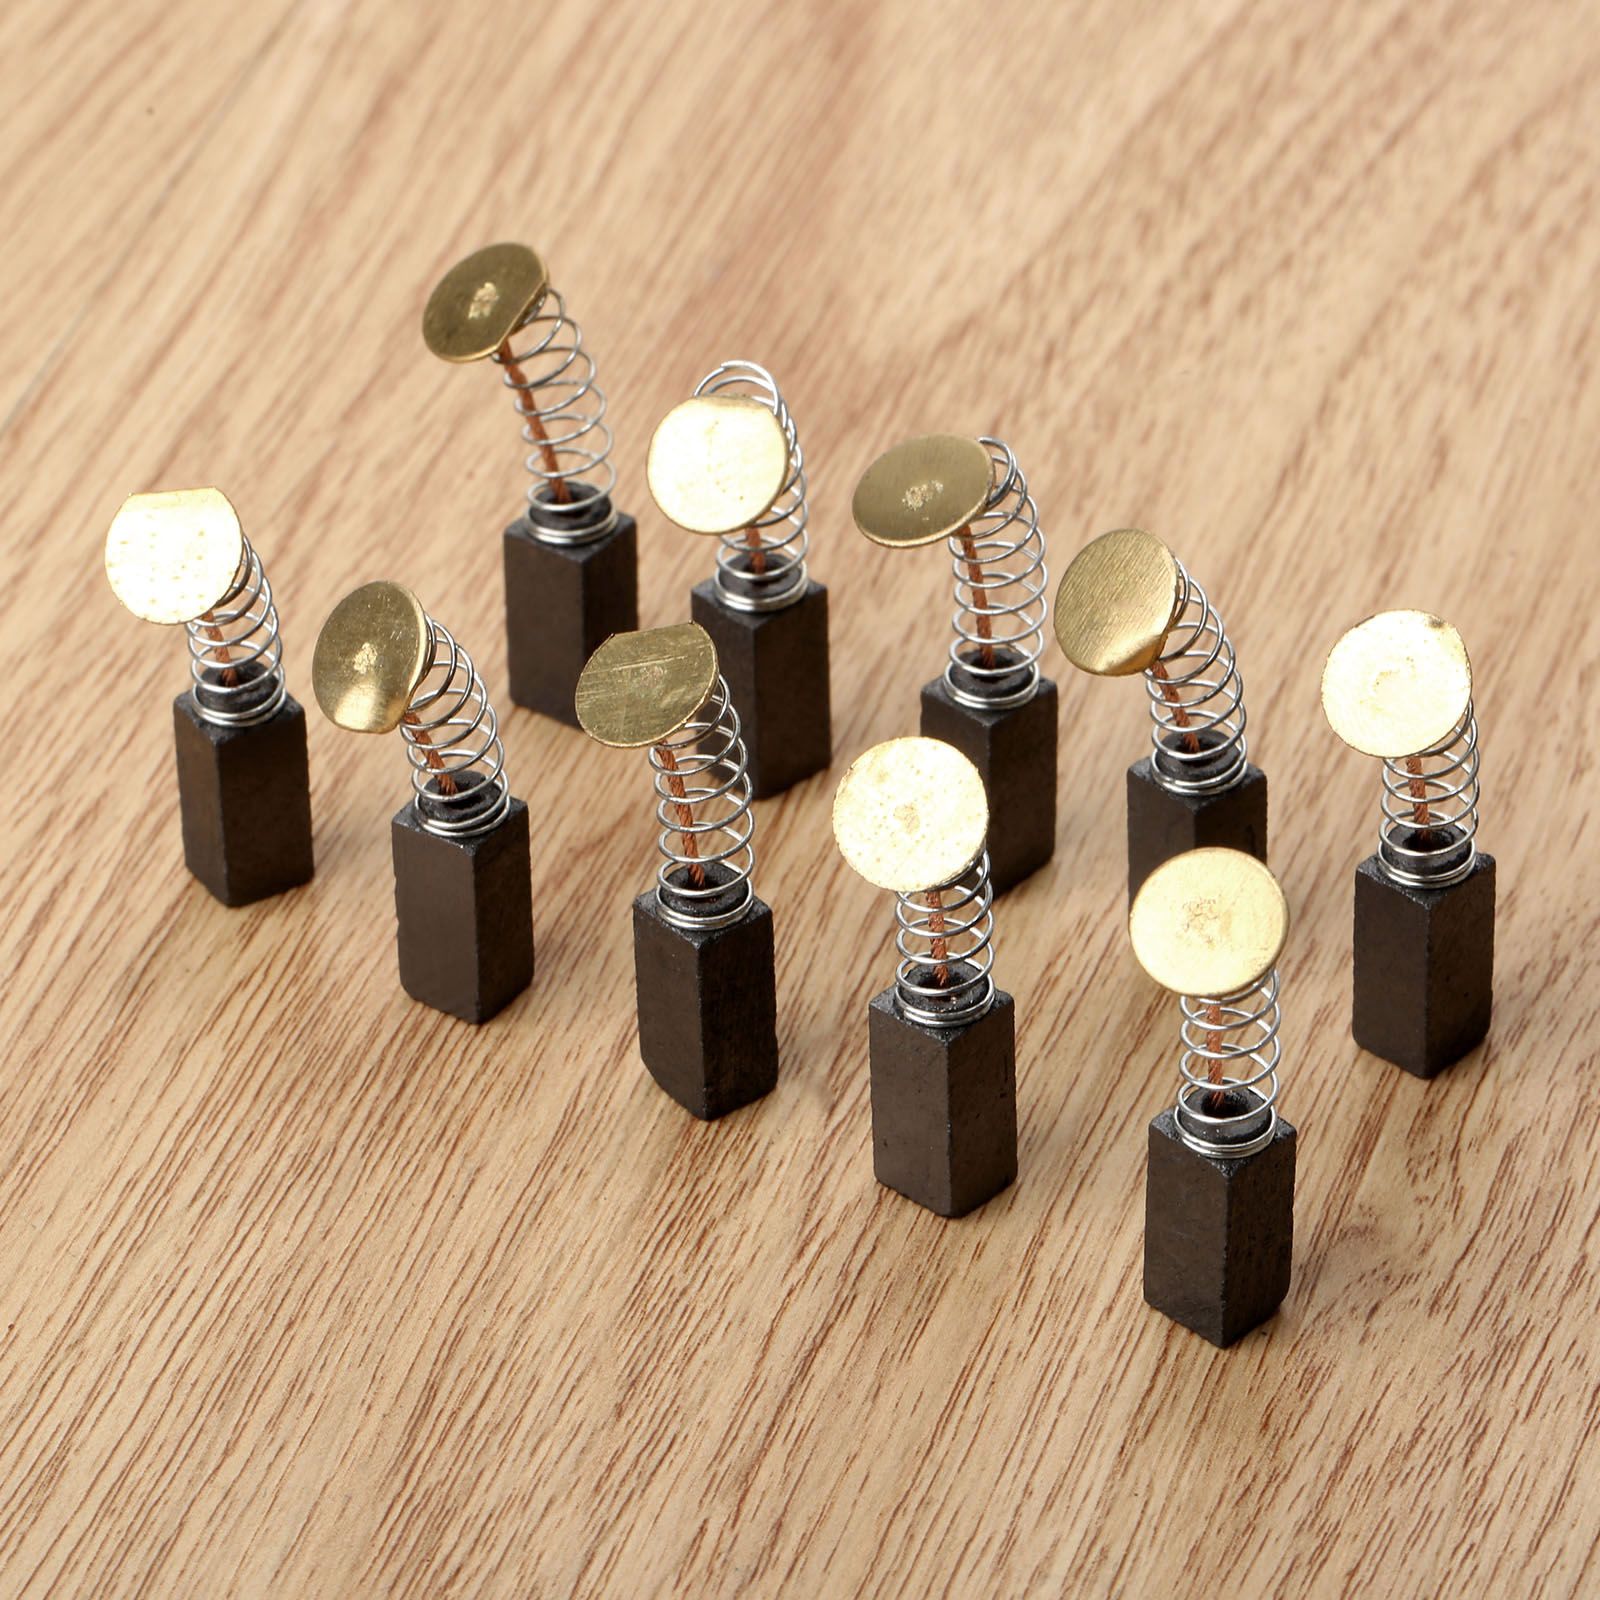 10Pcs/5Pairs Mini Drill Electric Grinder Replacement Carbon Brushes Spare Parts for Electric Motors Dremel Rotary Tool 6x6x6.5mm dmiotech 20 pcs electric drill motor carbon brushes 10mm 11mm 13mm 17mm 6mm 7 5mm 7mm 8mm 9mm